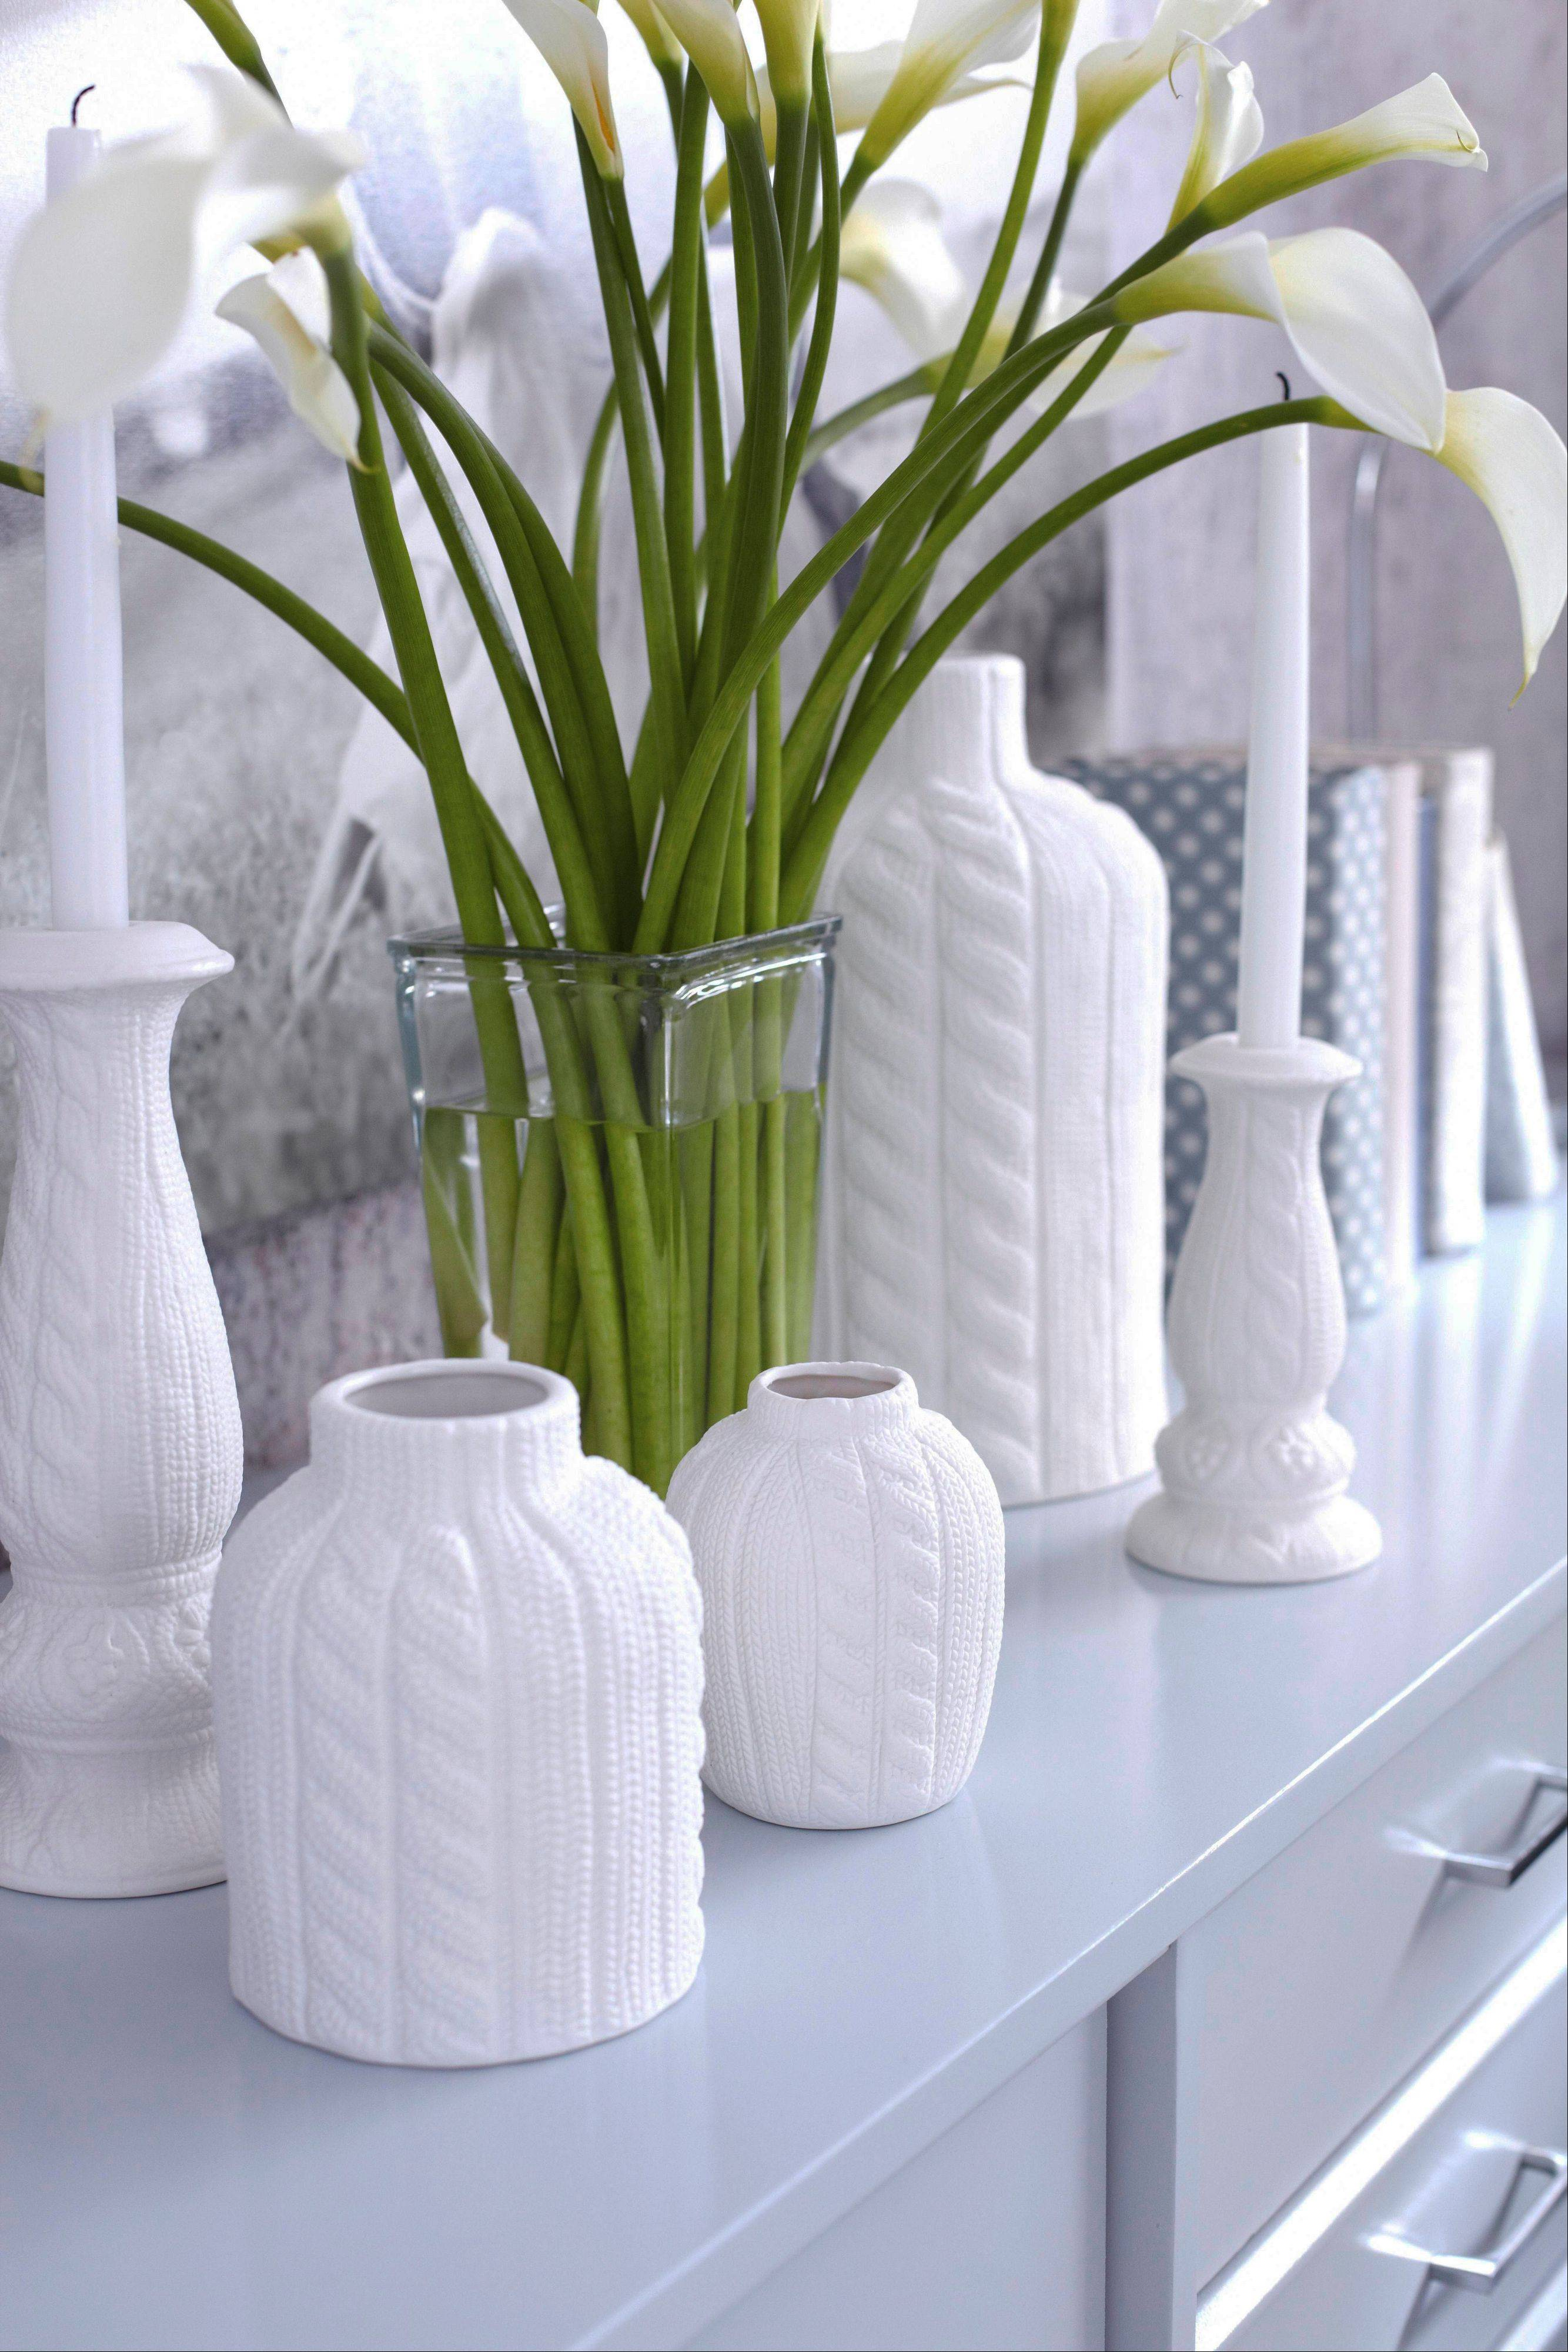 In addition to textiles, designer Brian Patrick Flynn likes to use cast ceramic accessories with a knit look and suggests using a plethora of knit elements for bringing touches of winter into a space.